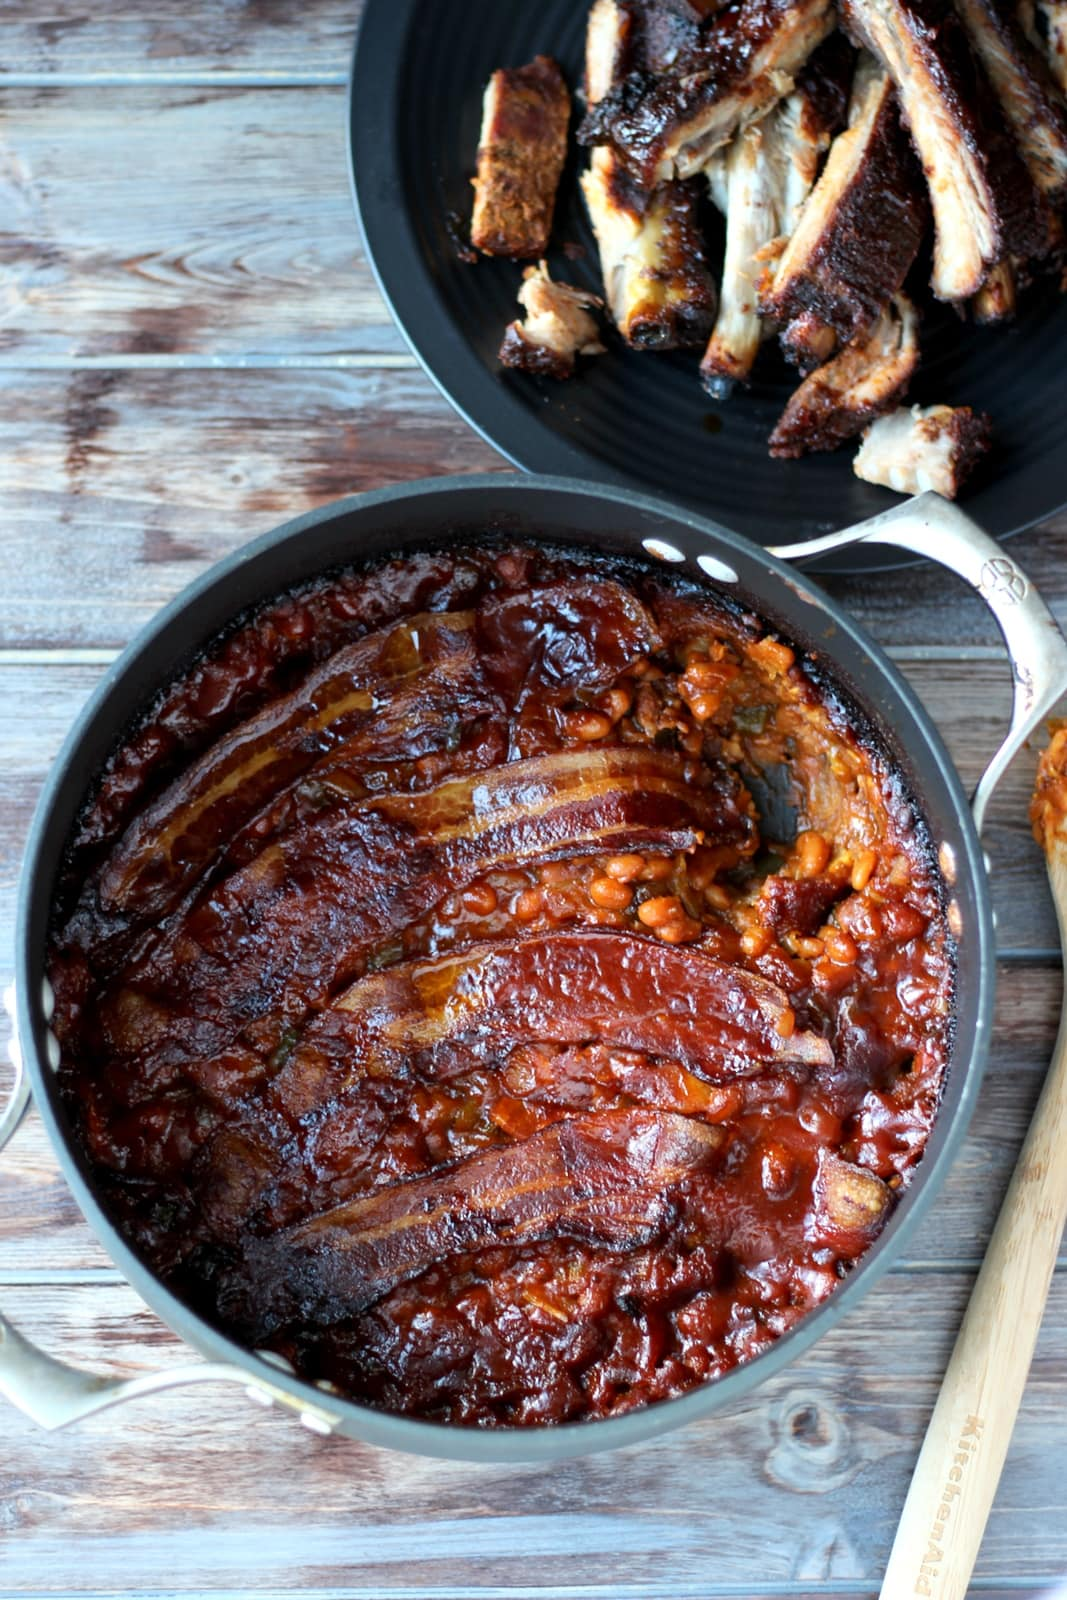 Homemade Baked Beans + Thick Cut Bacon - thewoodenskillet.com